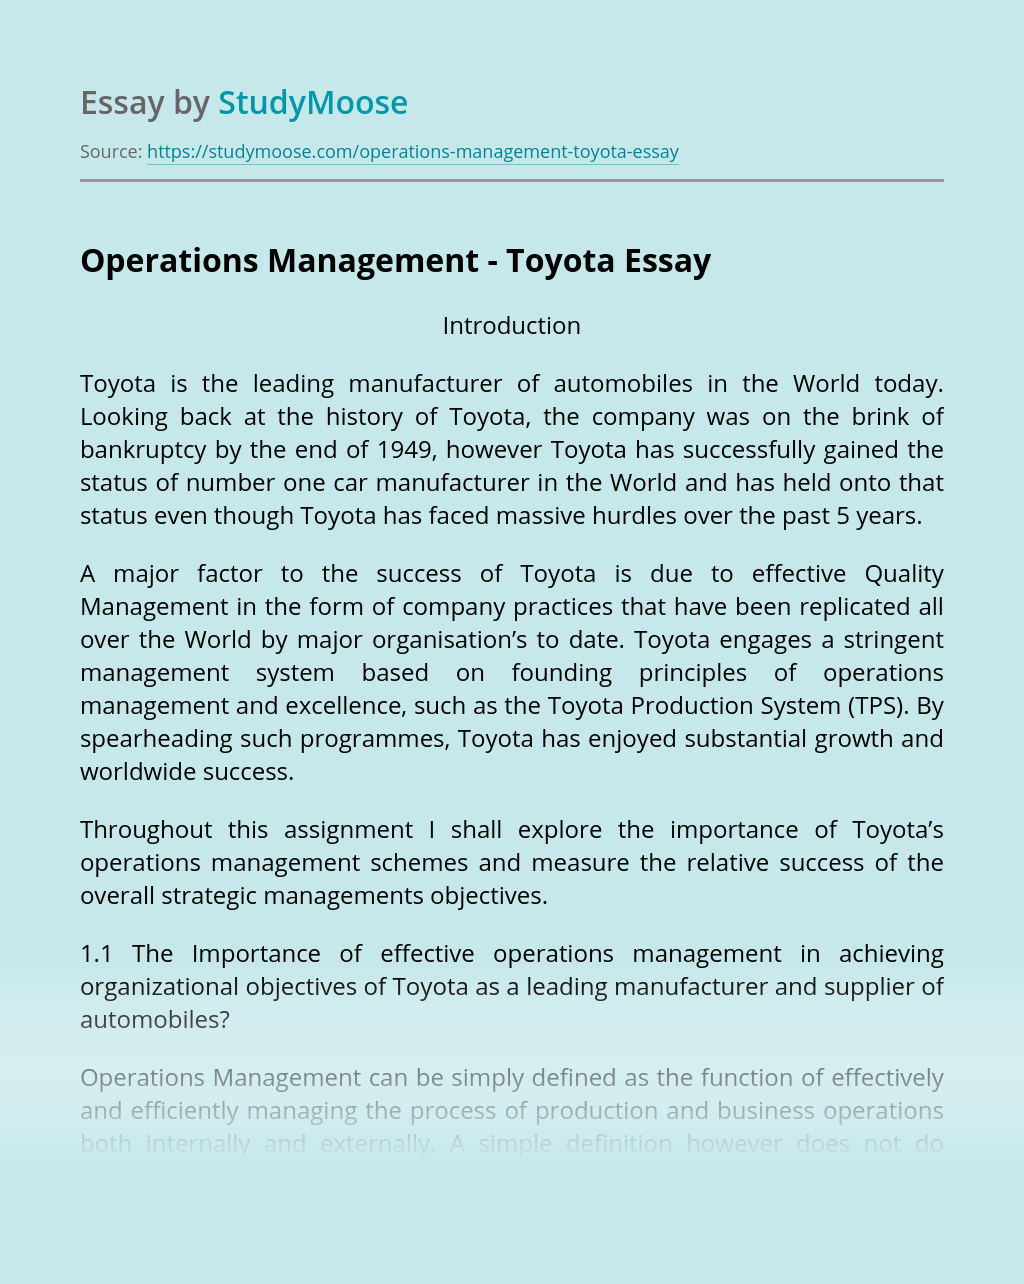 Operations Management - Toyota